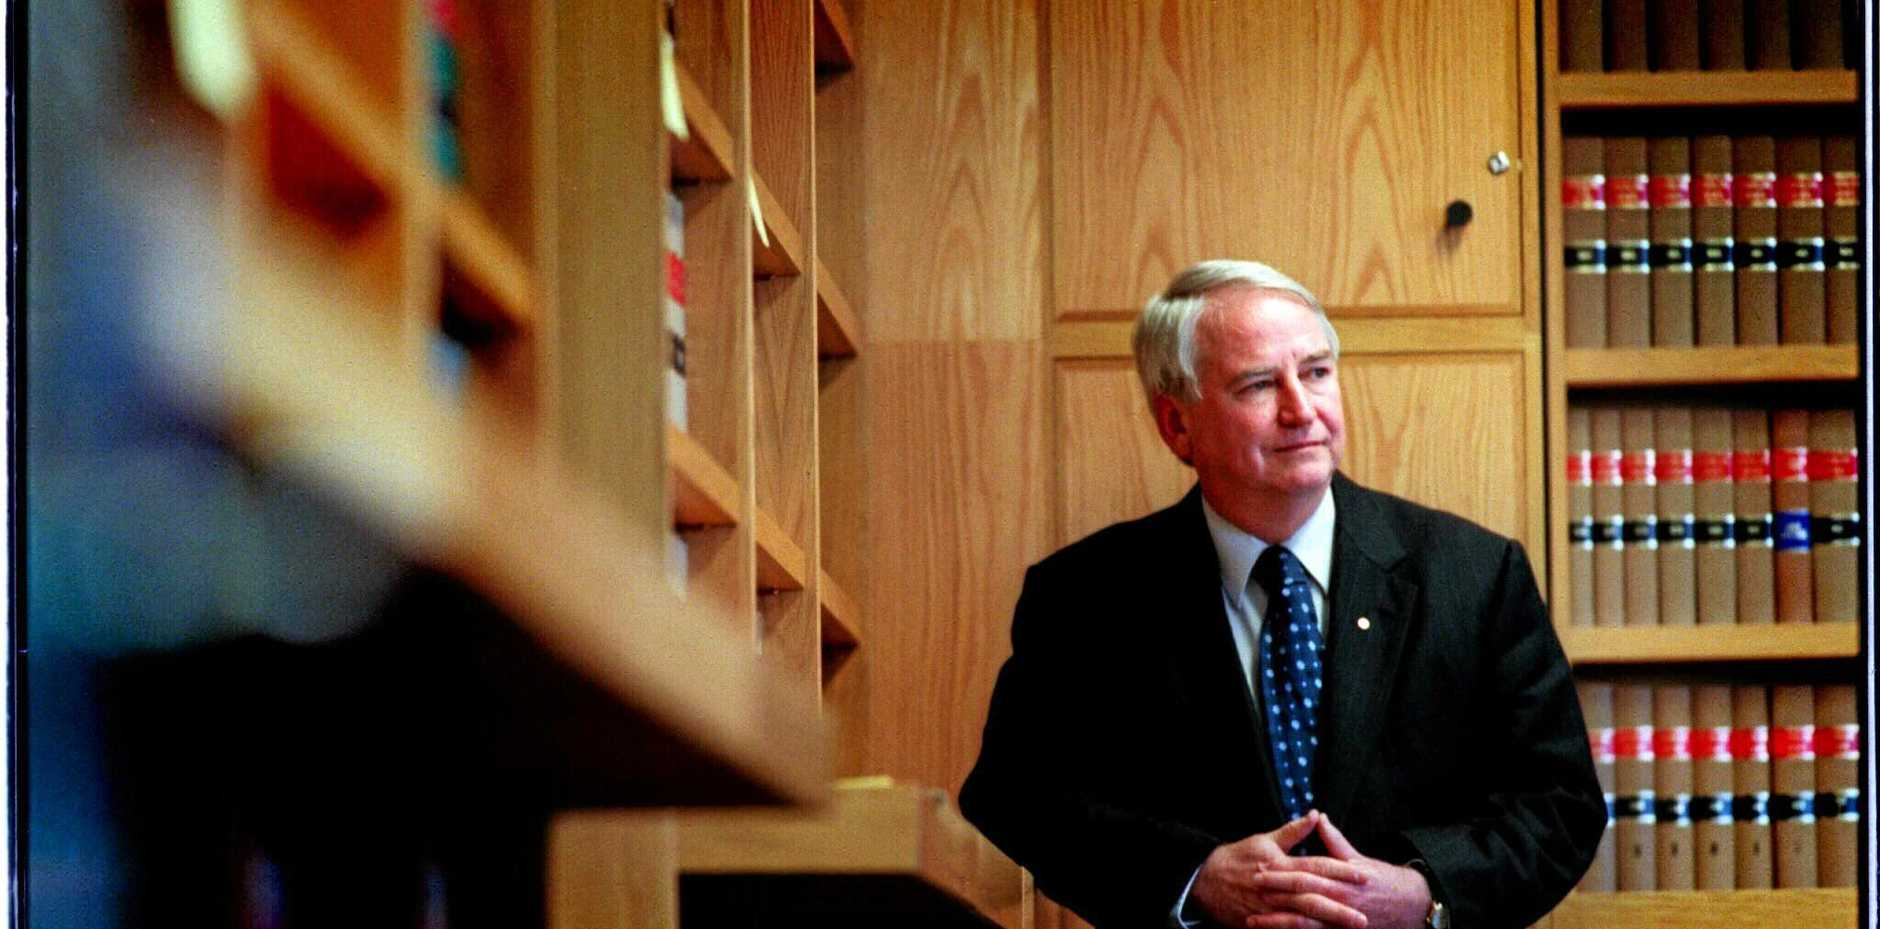 REFLECTING:  Justice Tony Fitzgerald in his Brisbane chambers in 1998, prior to taking his position on NSW Supreme Court bench.